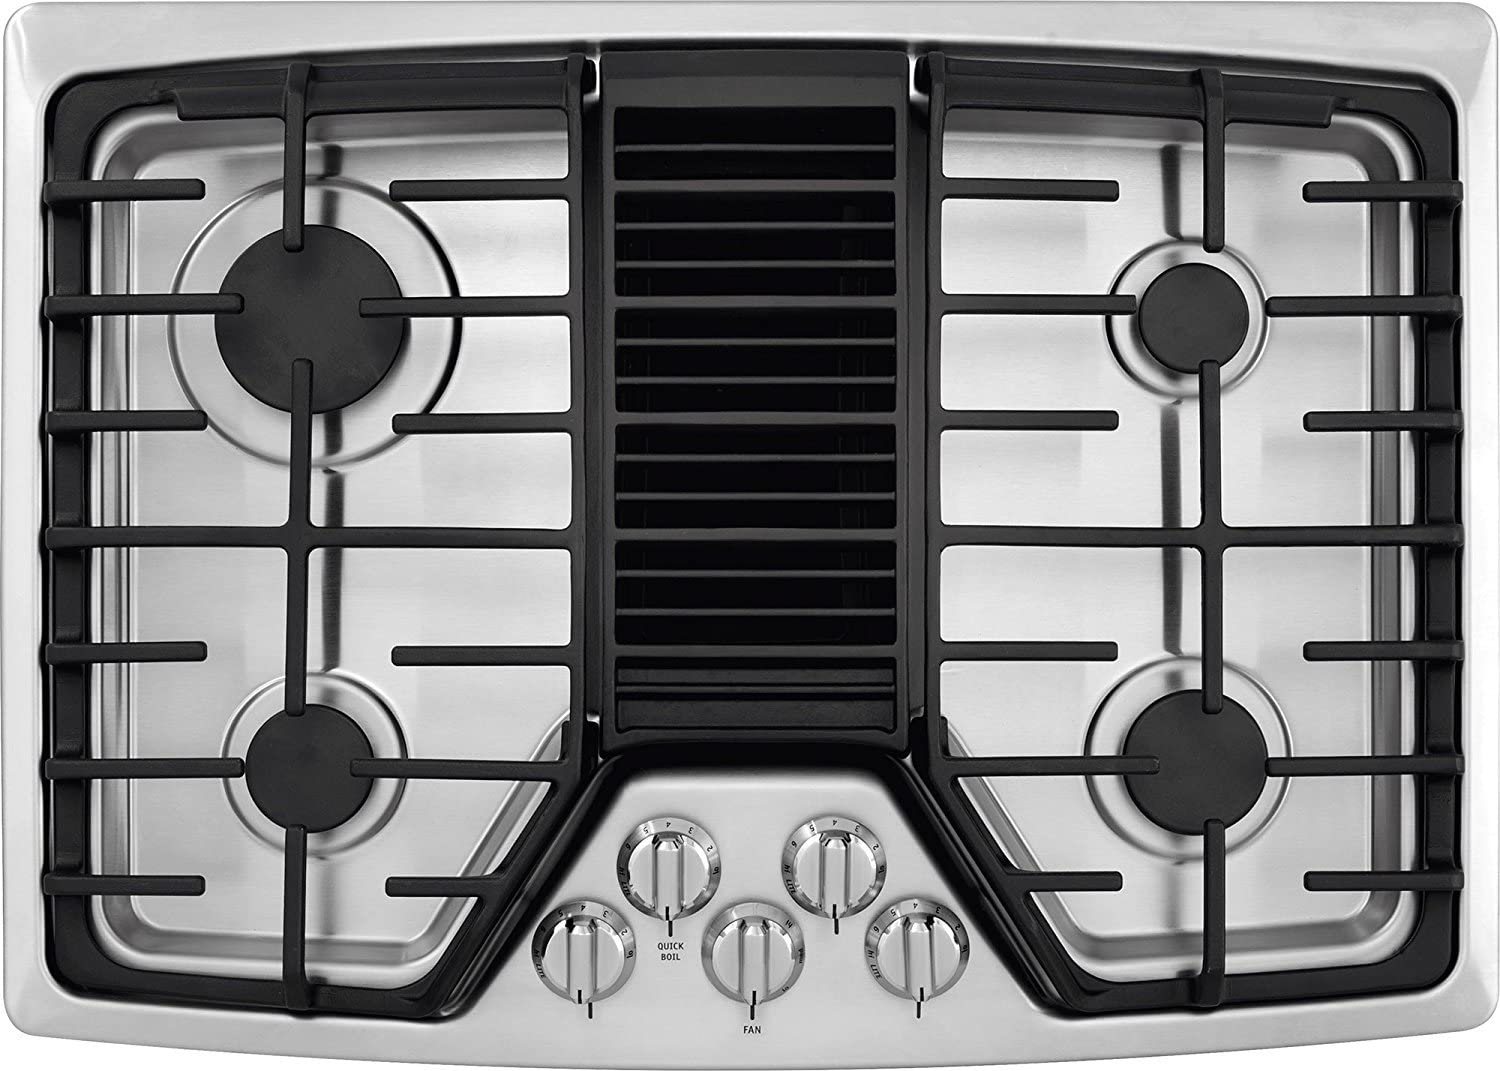 Frigidaire Gas Cooktop with downdraft : Downdraft gas cooktop reviews